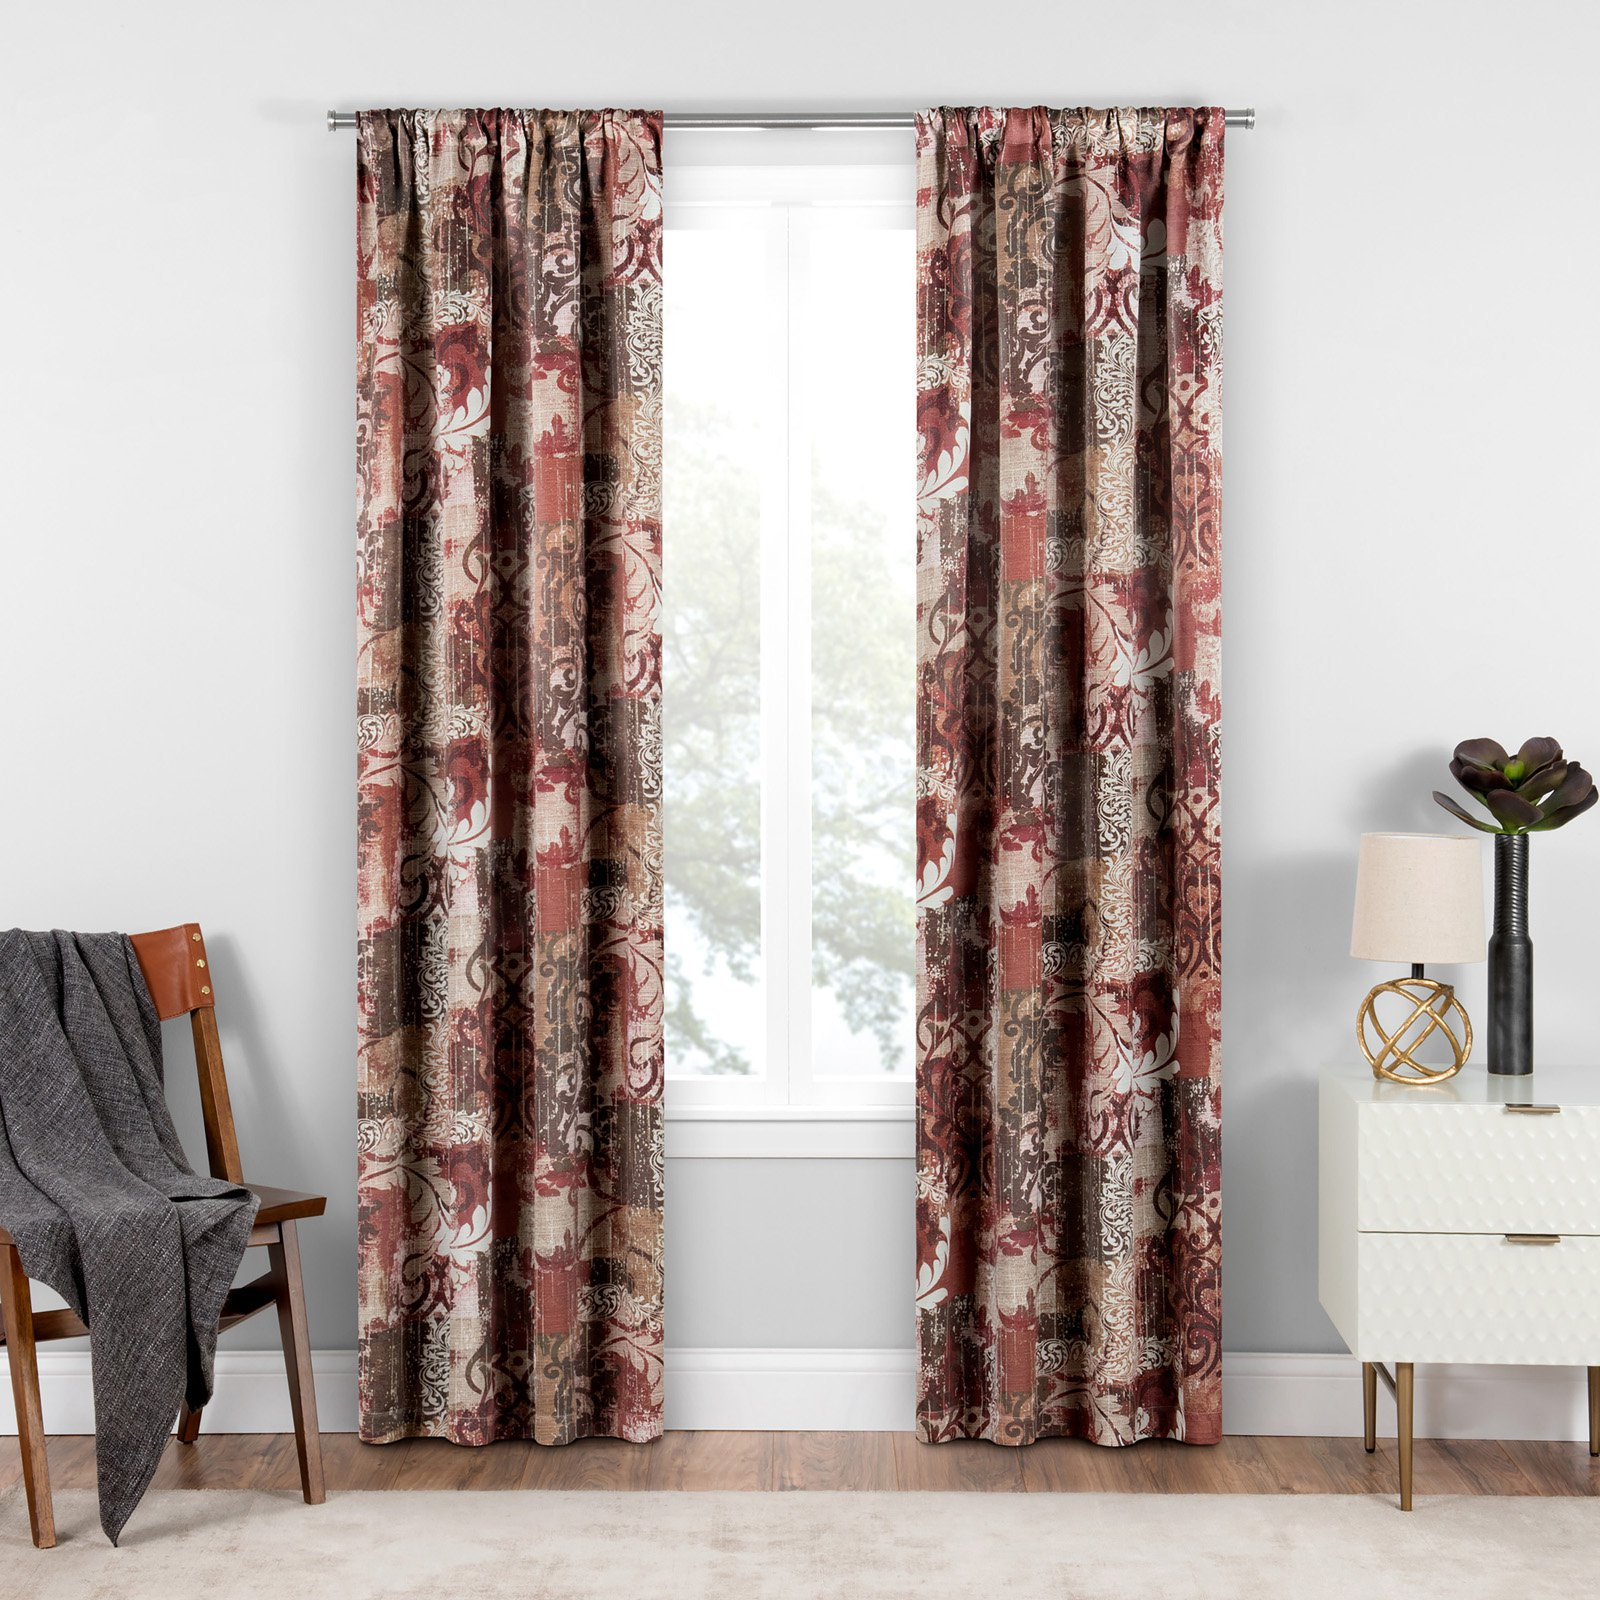 Chiswick Blackout Window Curtain Tuscan/patchwork/floral Within Tuscan Thermal Backed Blackout Curtain Panel Pairs (View 8 of 30)